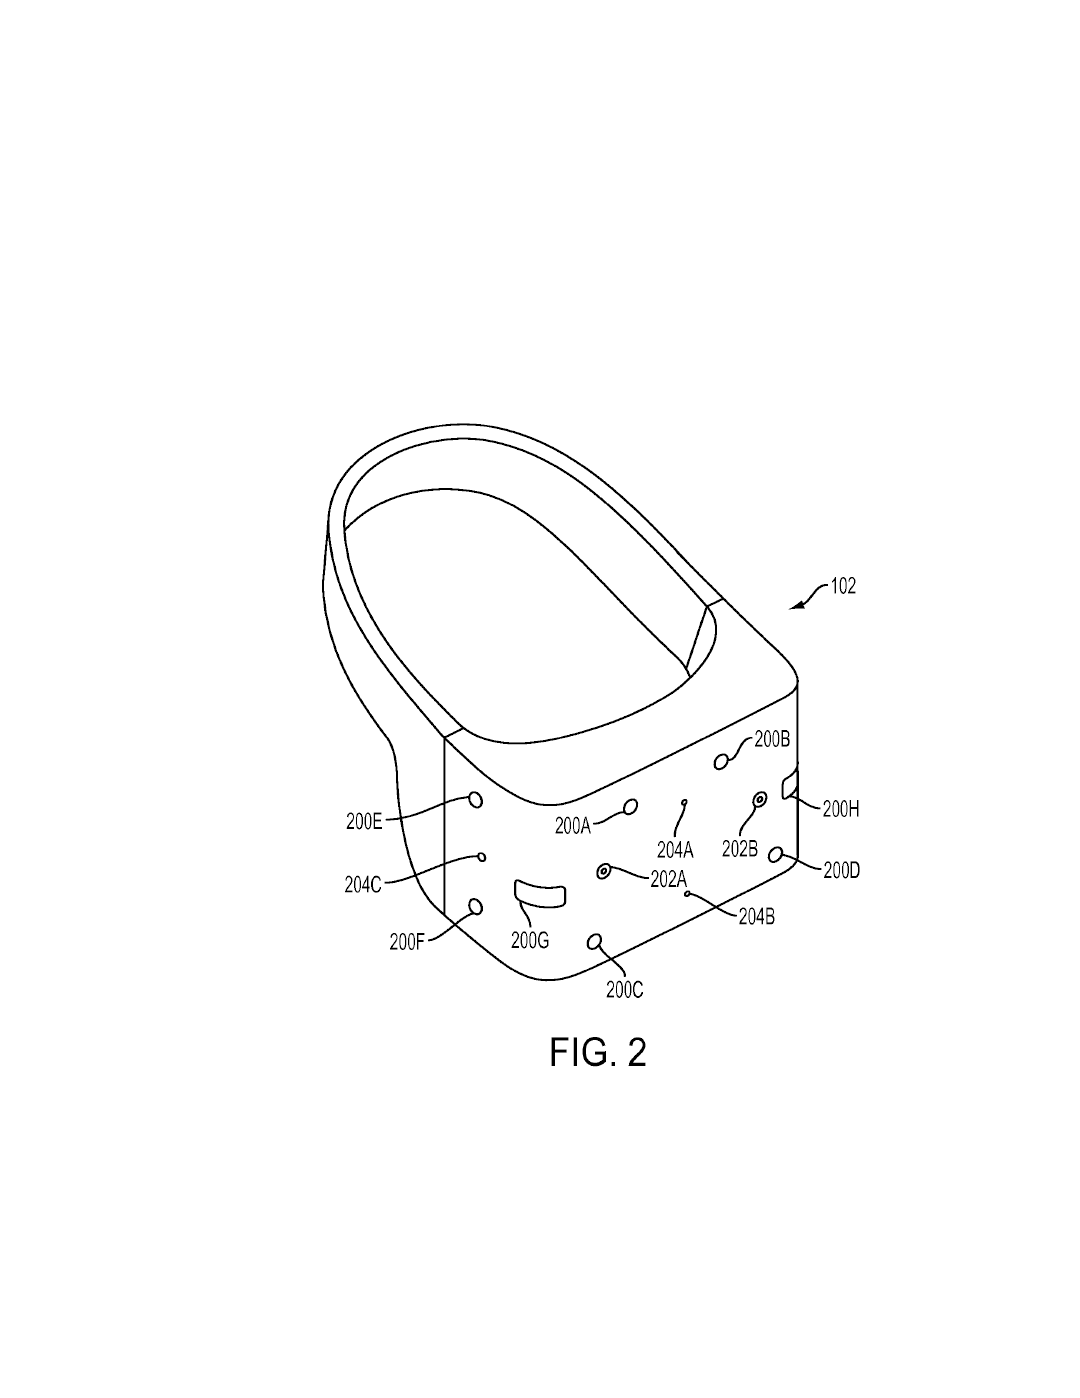 sony files 3 patents for glove controller for use with